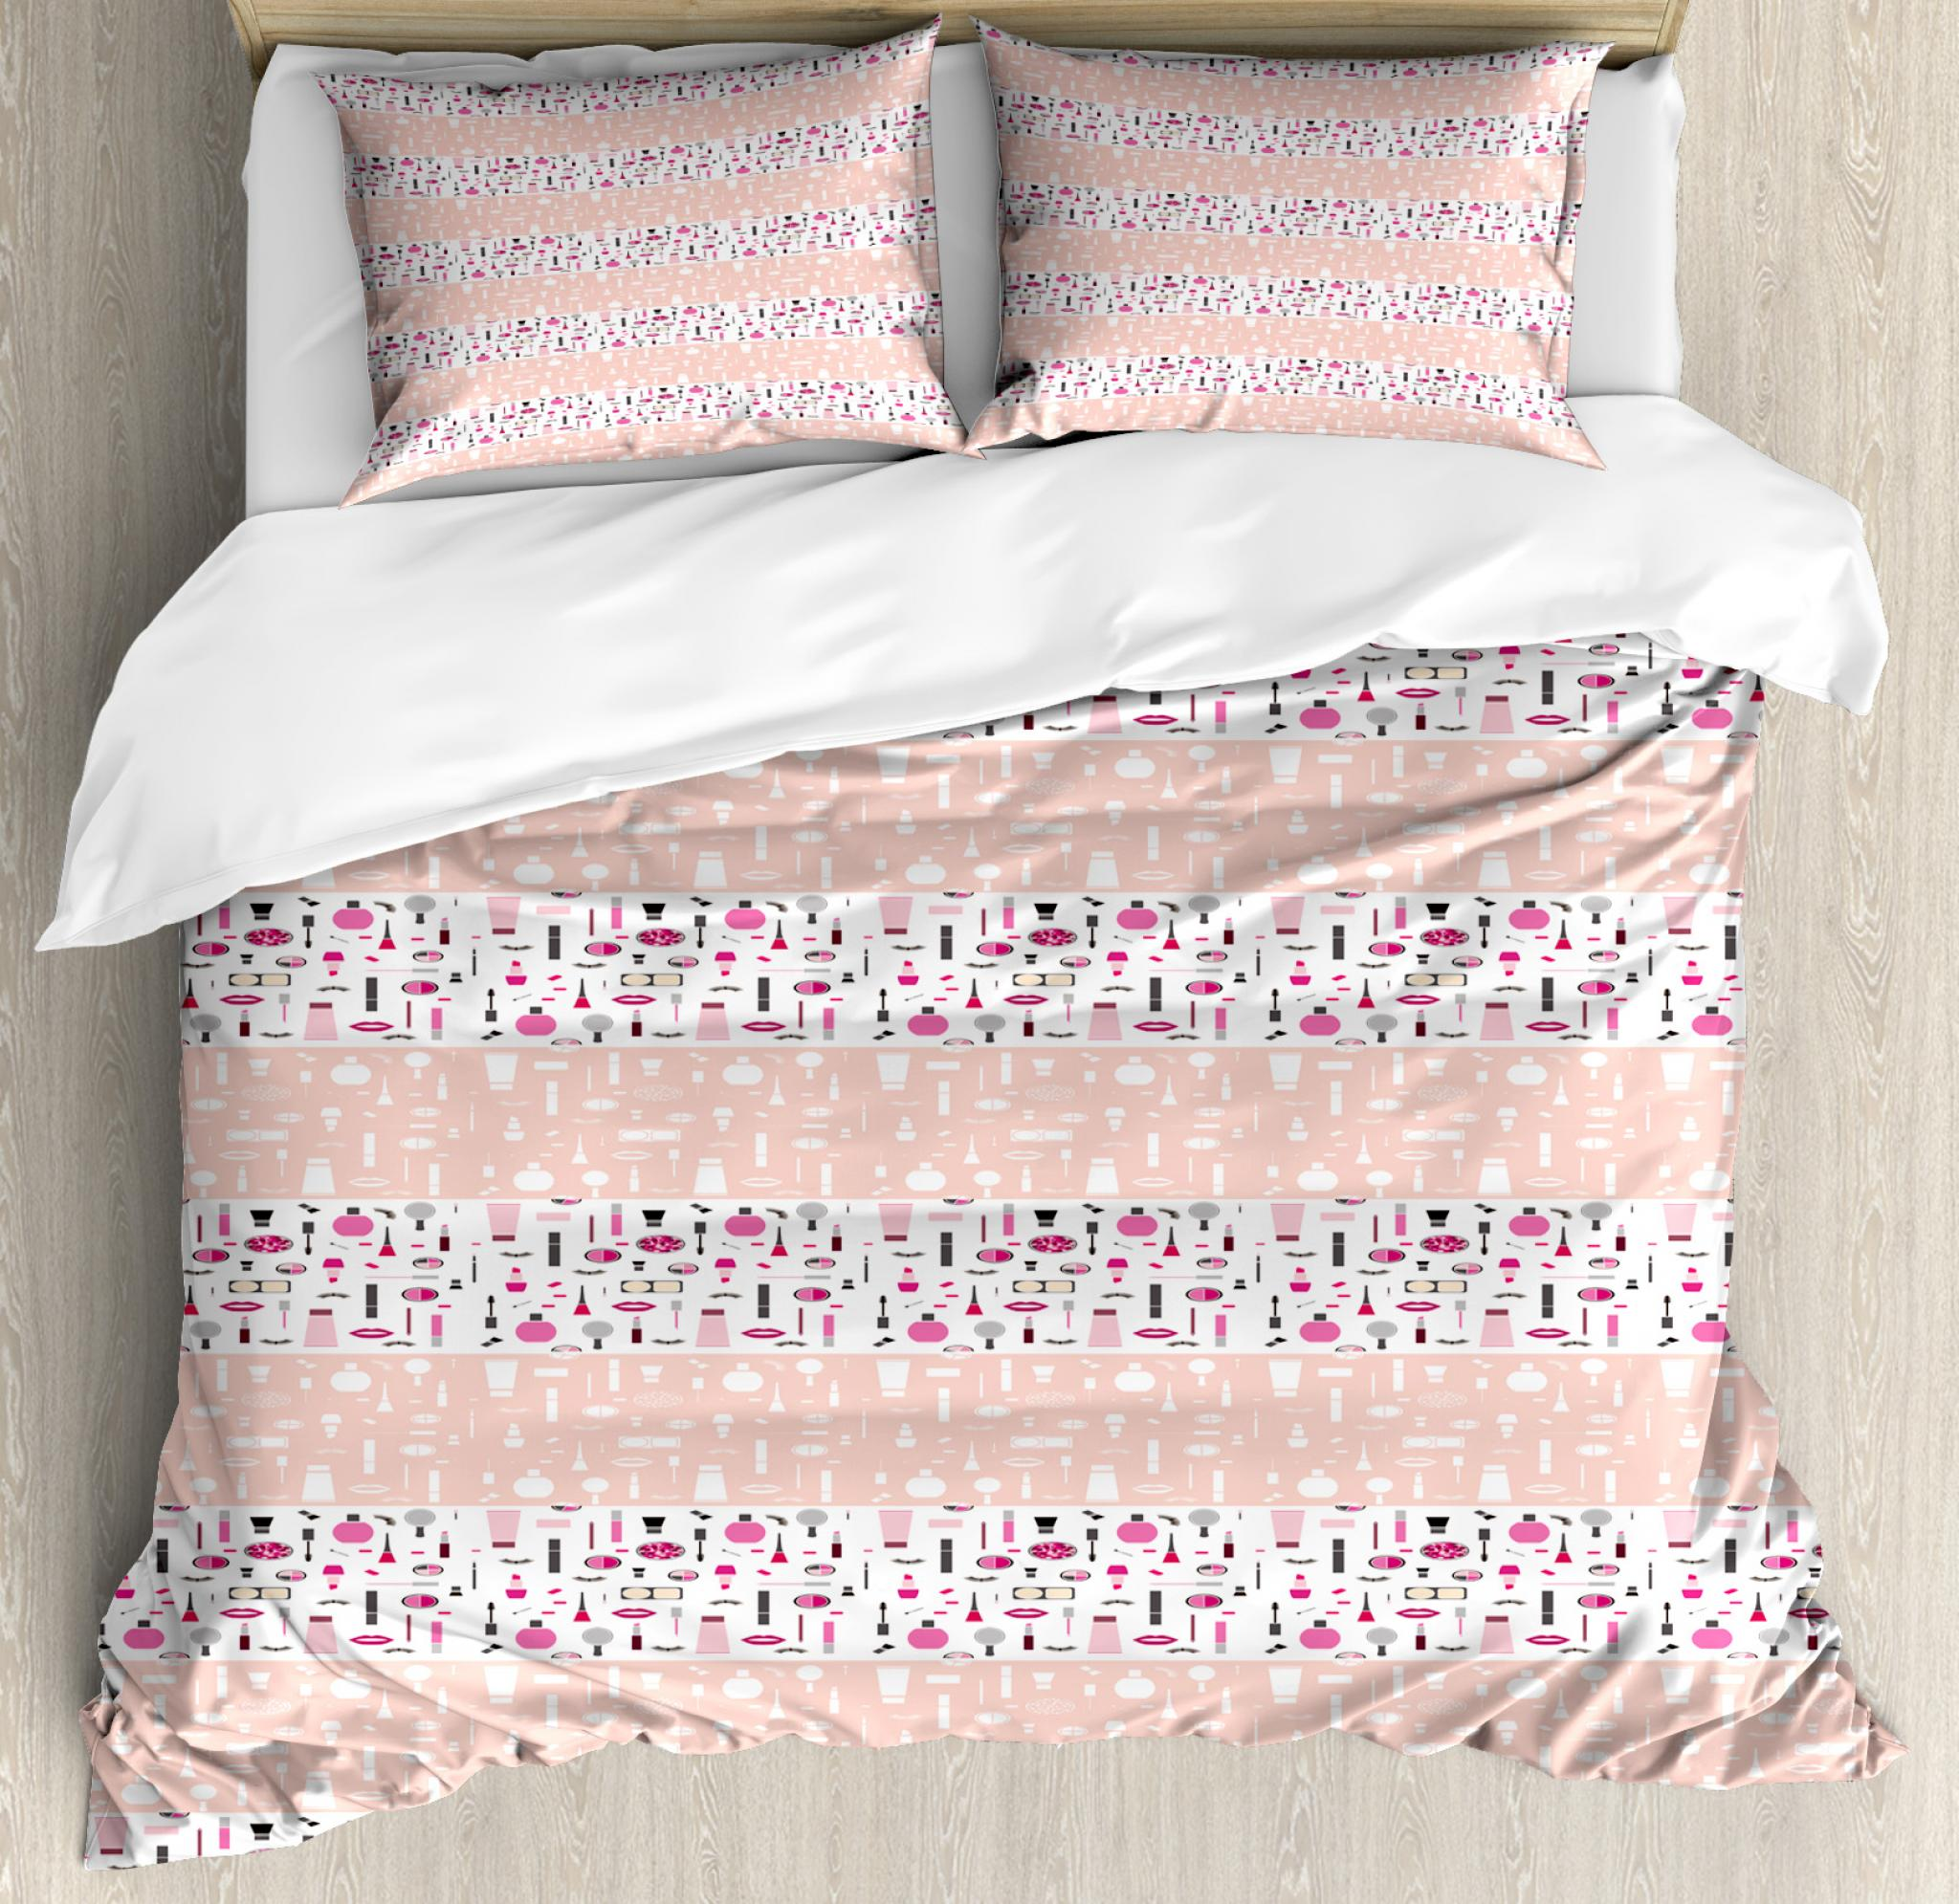 Makeup Duvet Cover Set Queen Size, Makeup Beauty Concept Silhouette Lipstick Eyeliner Mascara Pattern, Decorative 3 Piece Bedding Set with 2 Pillow Shams, Blush Hot Pink and White, by Ambesonne